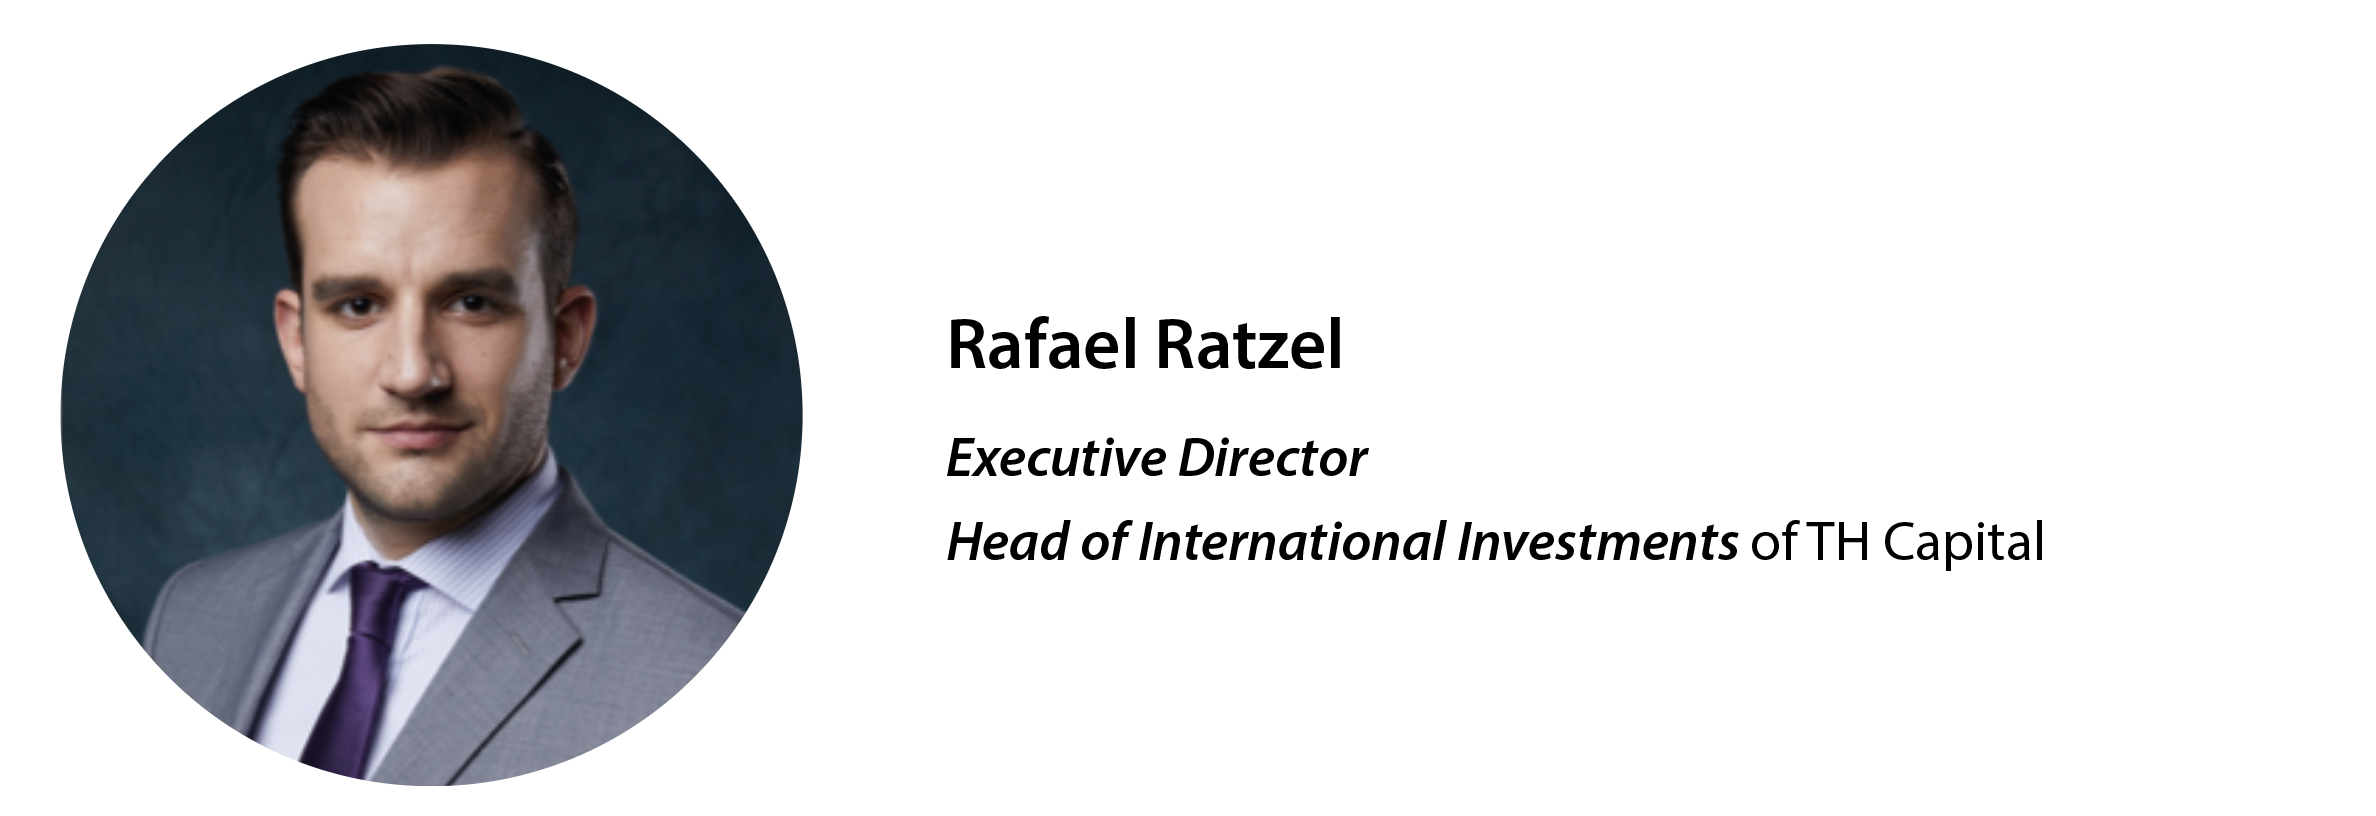 Rafael Ratzel, Executive Director & Head of International Investments of Tsinghua Holdings Capital